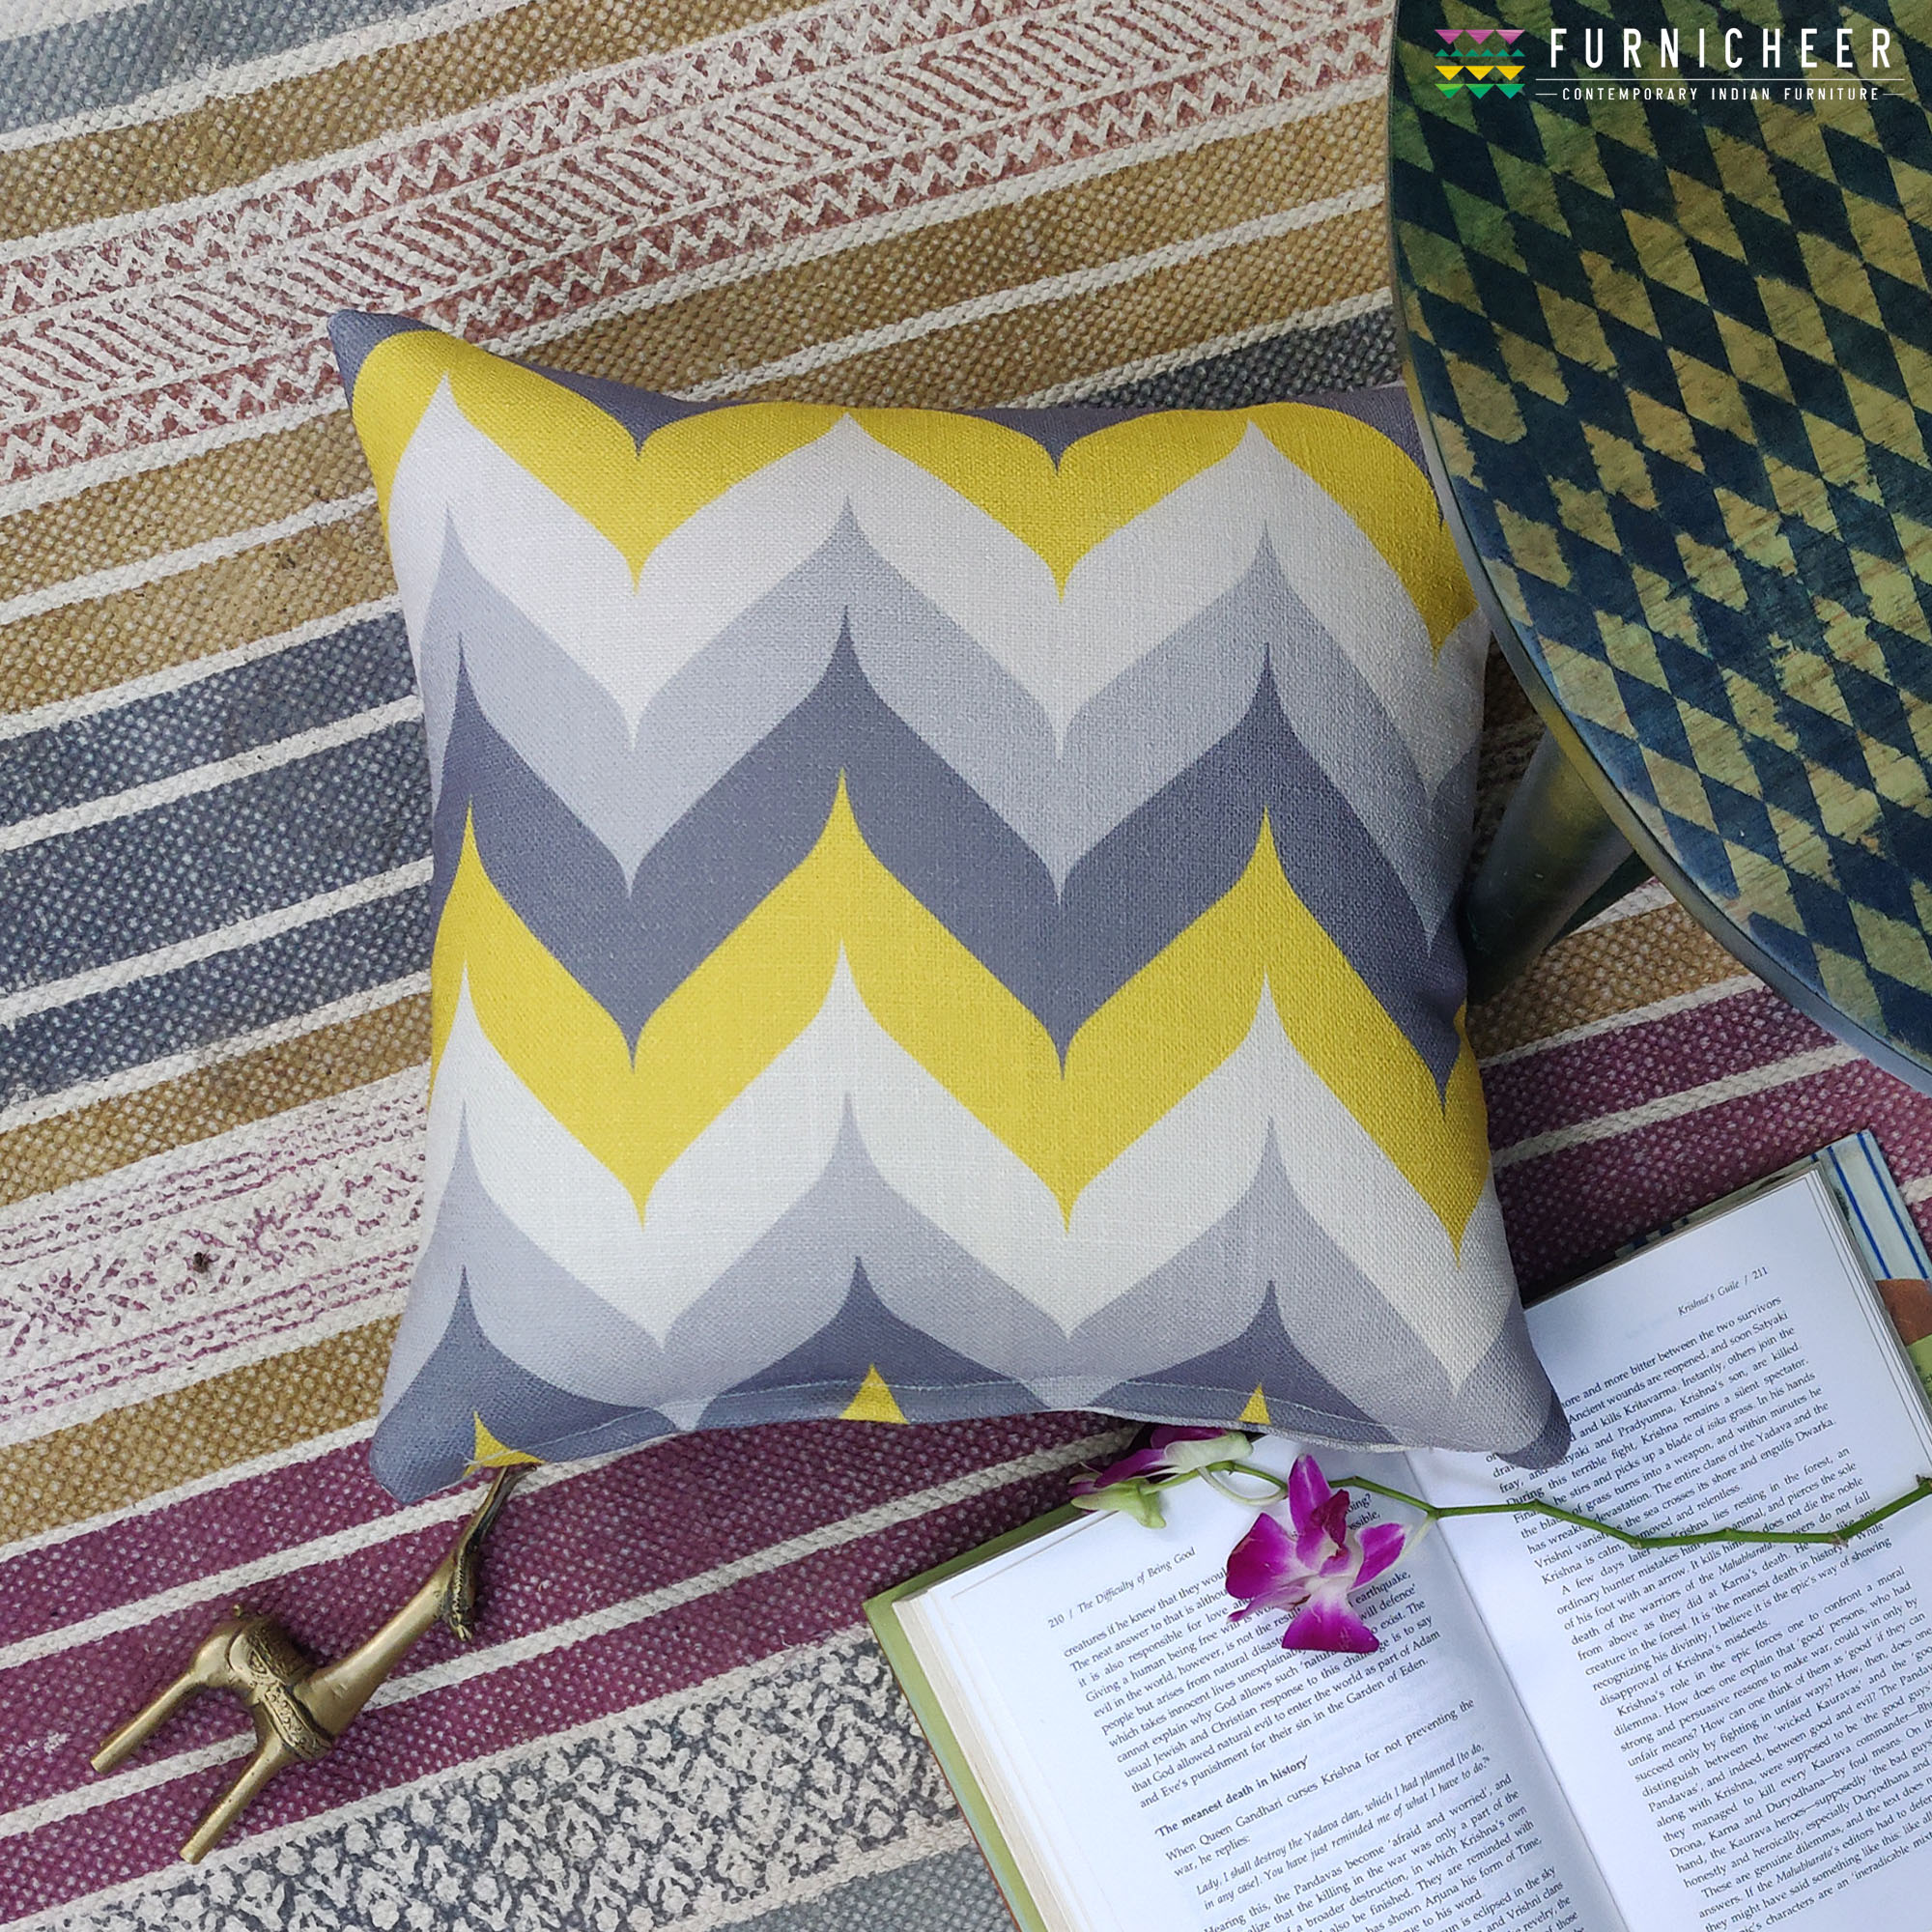 3.CUSHION SKU CUST0001